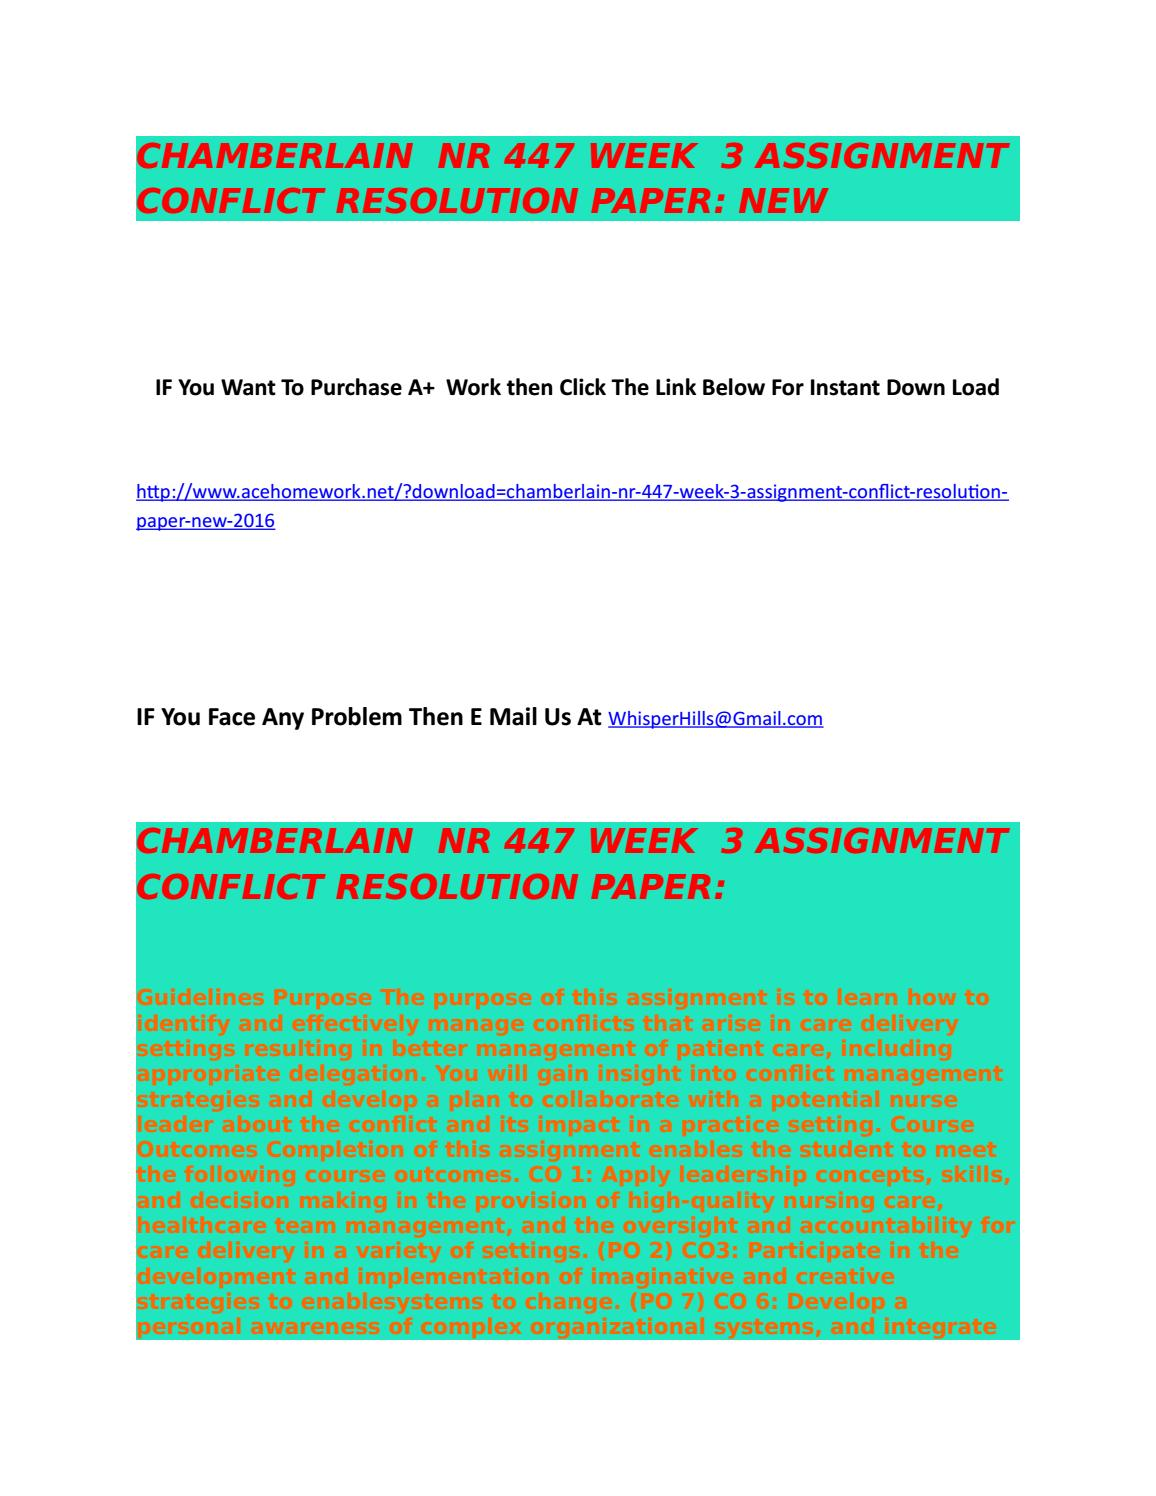 Conflict resolution papers